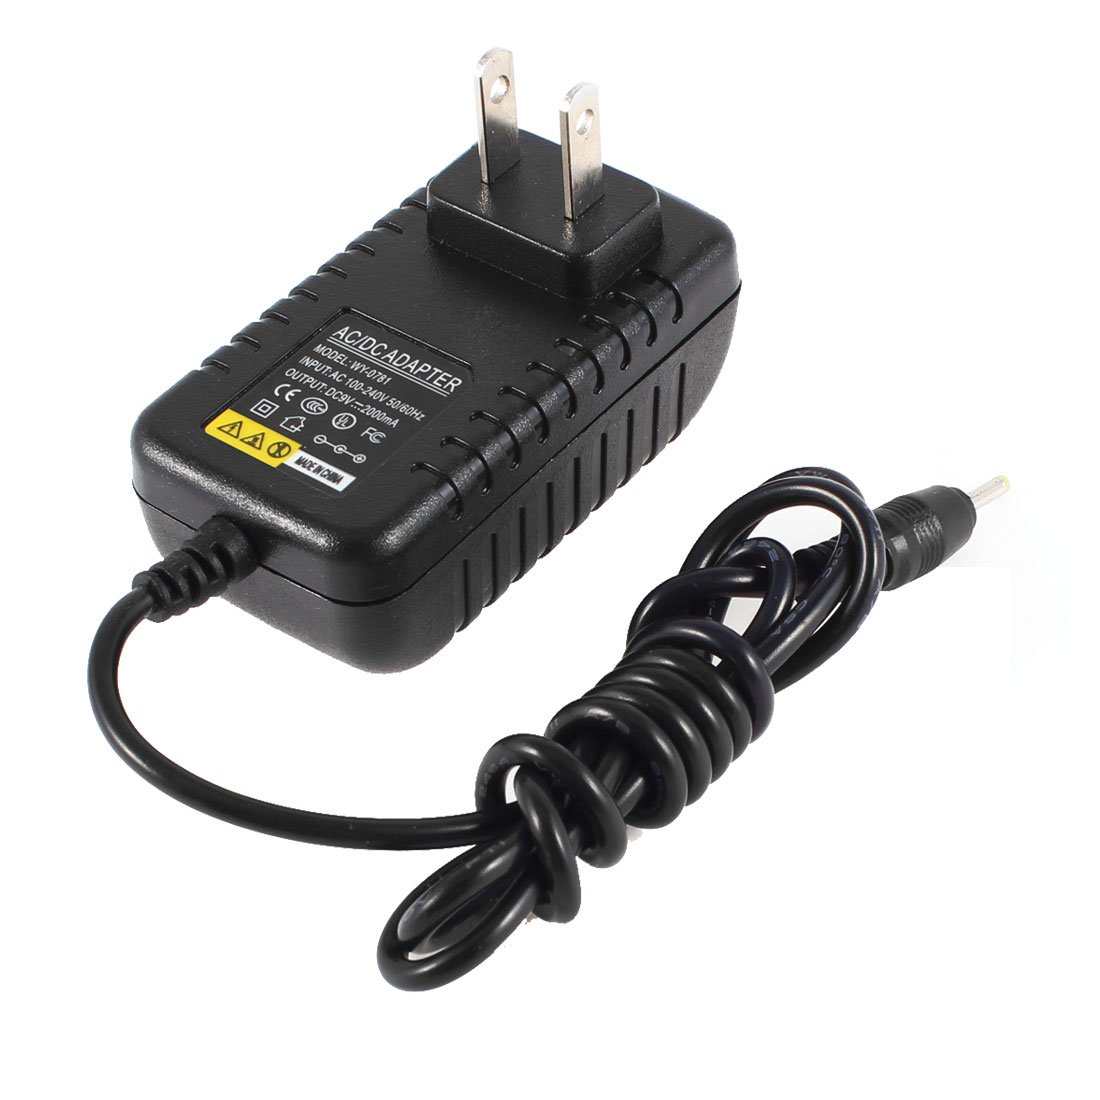 US Plug AC 100-240V DC 9V 2A 2.5mm Jack Power Charger Adapter for Tablet PC